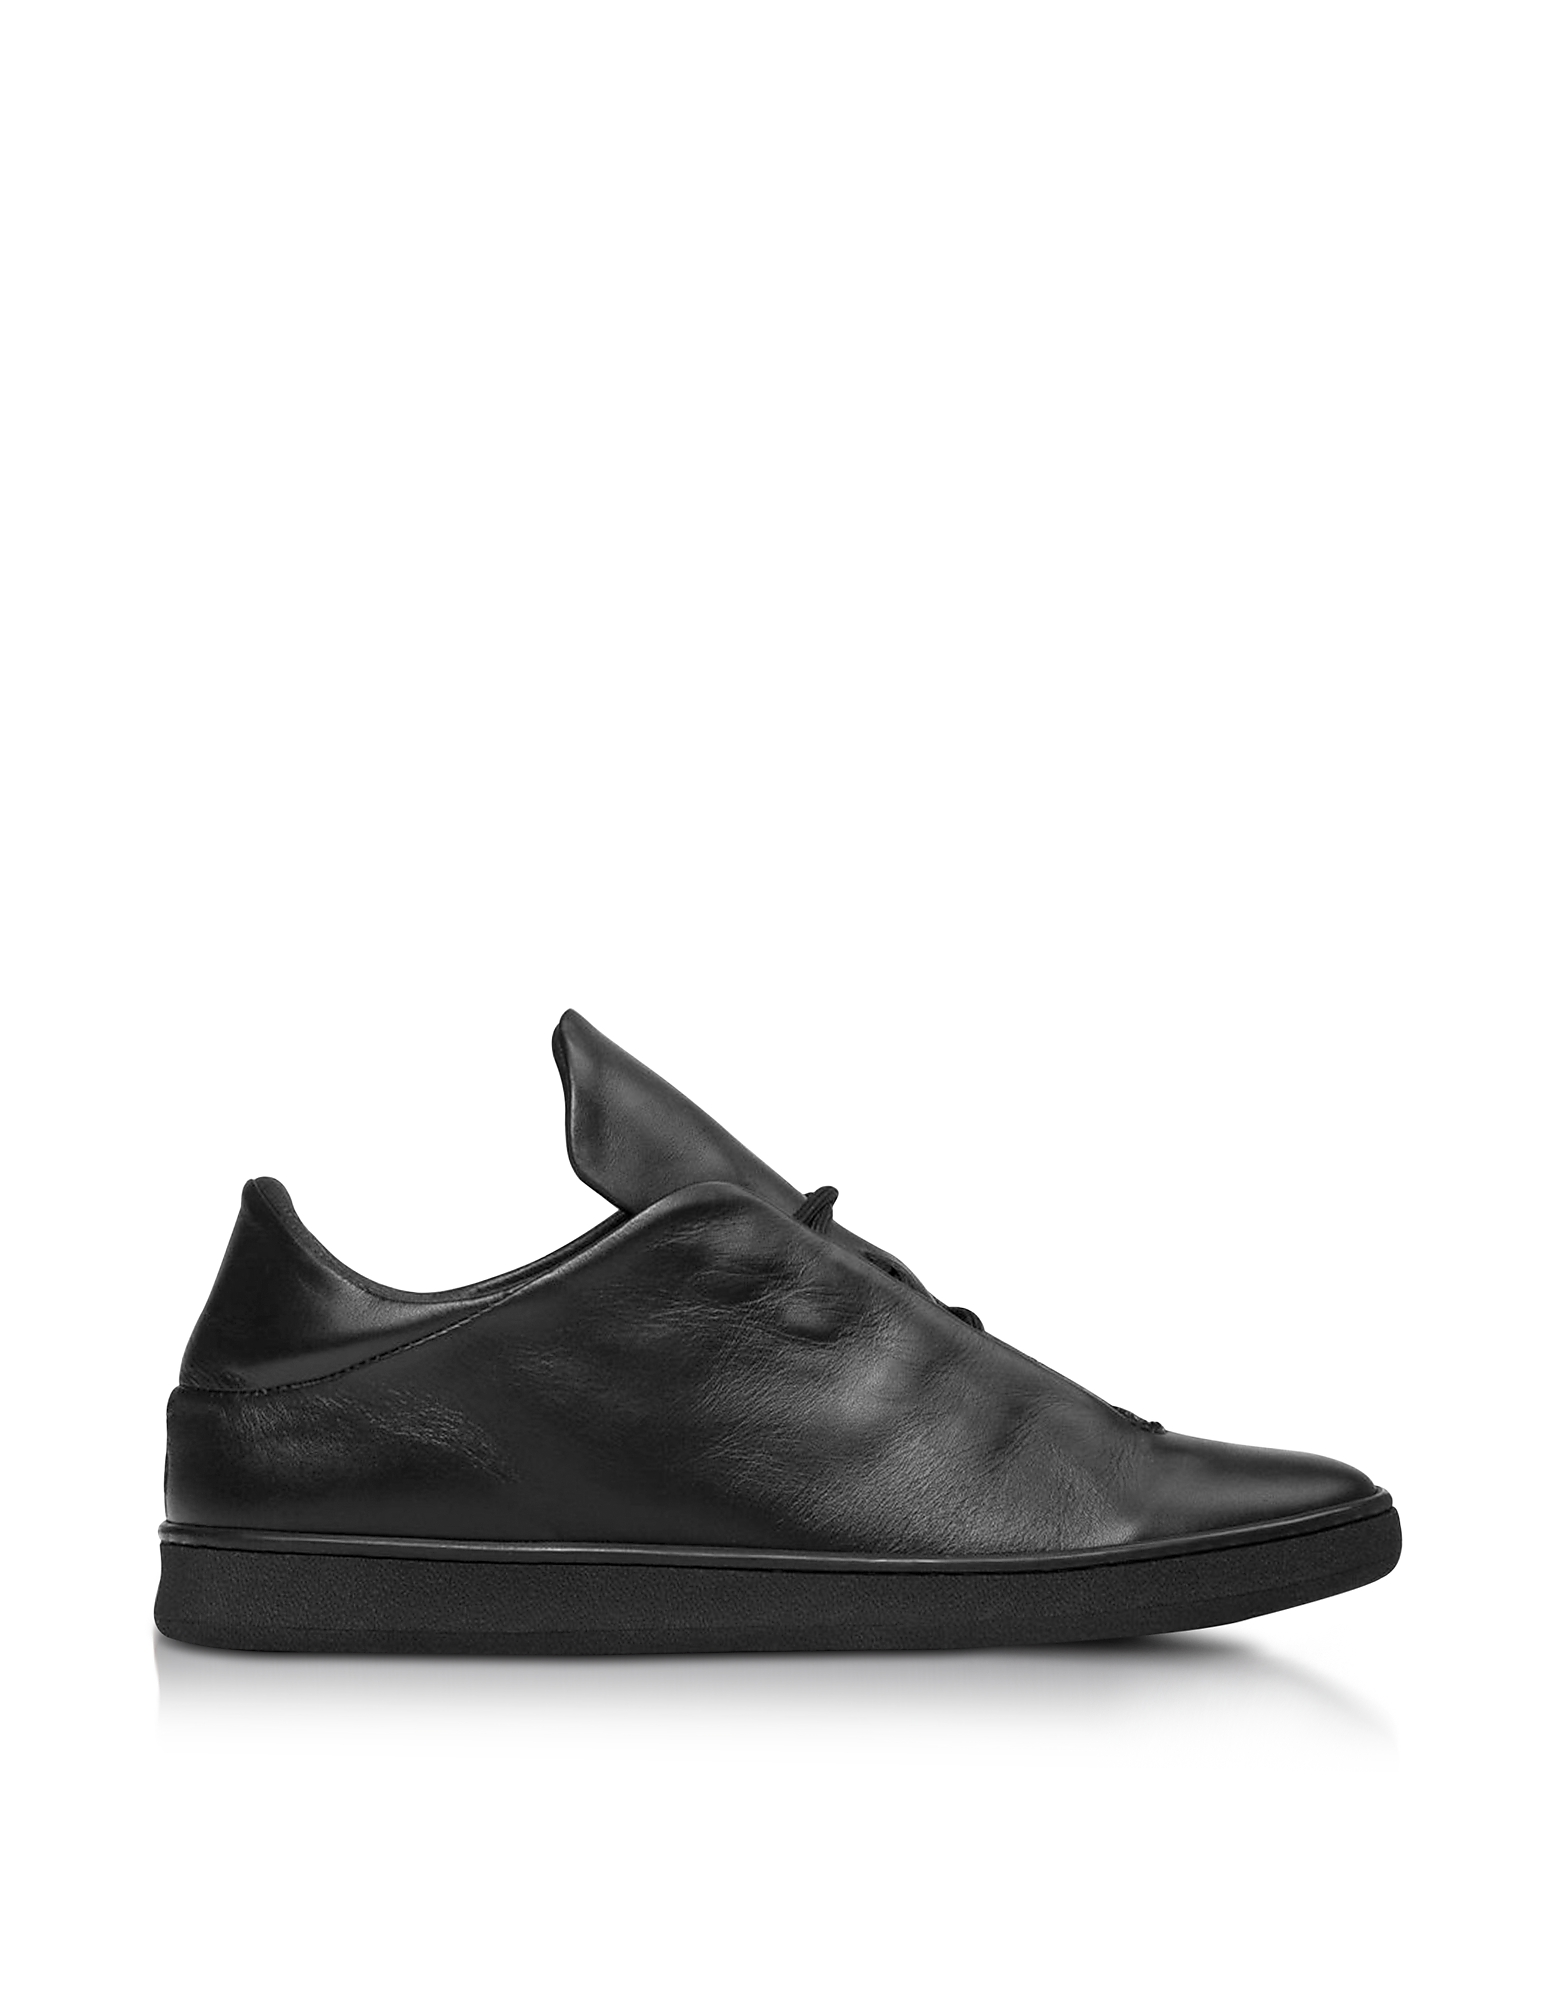 Ylati Shoes, Virgilio Black Nappa Leather Low Top Men's Sneakers